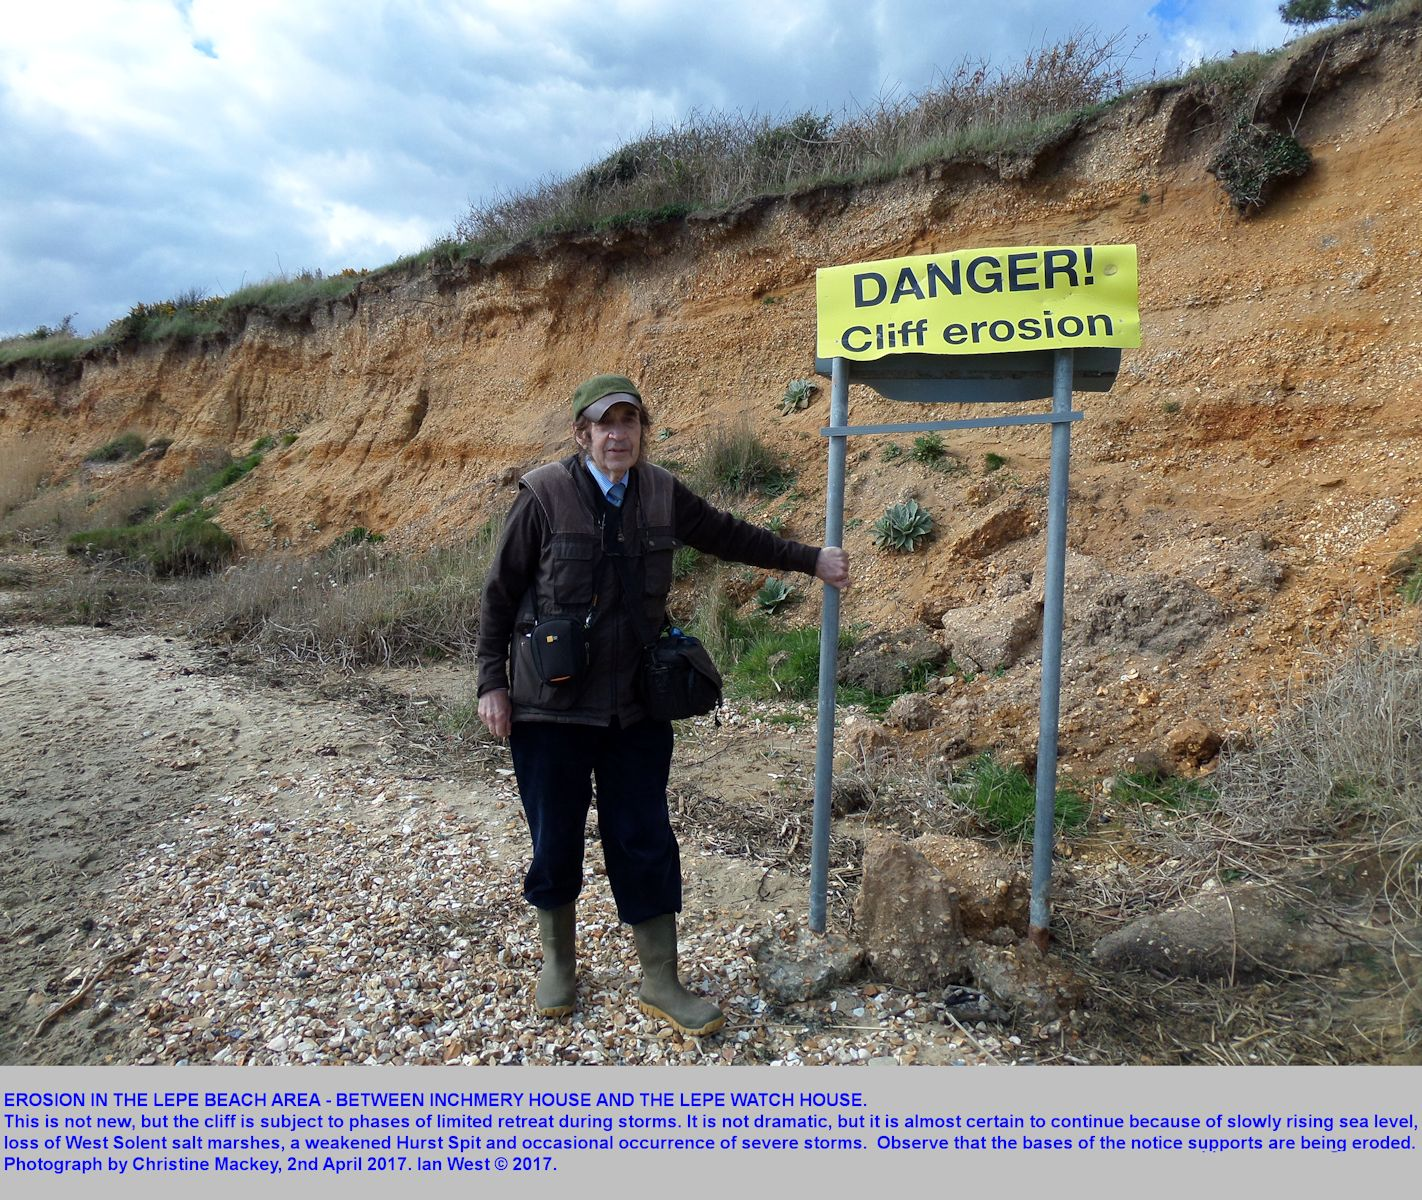 A warning notice about risk of cliff-fall at an eroding location east of Lepe Beach, Hampshire, and not far from Inchmery House